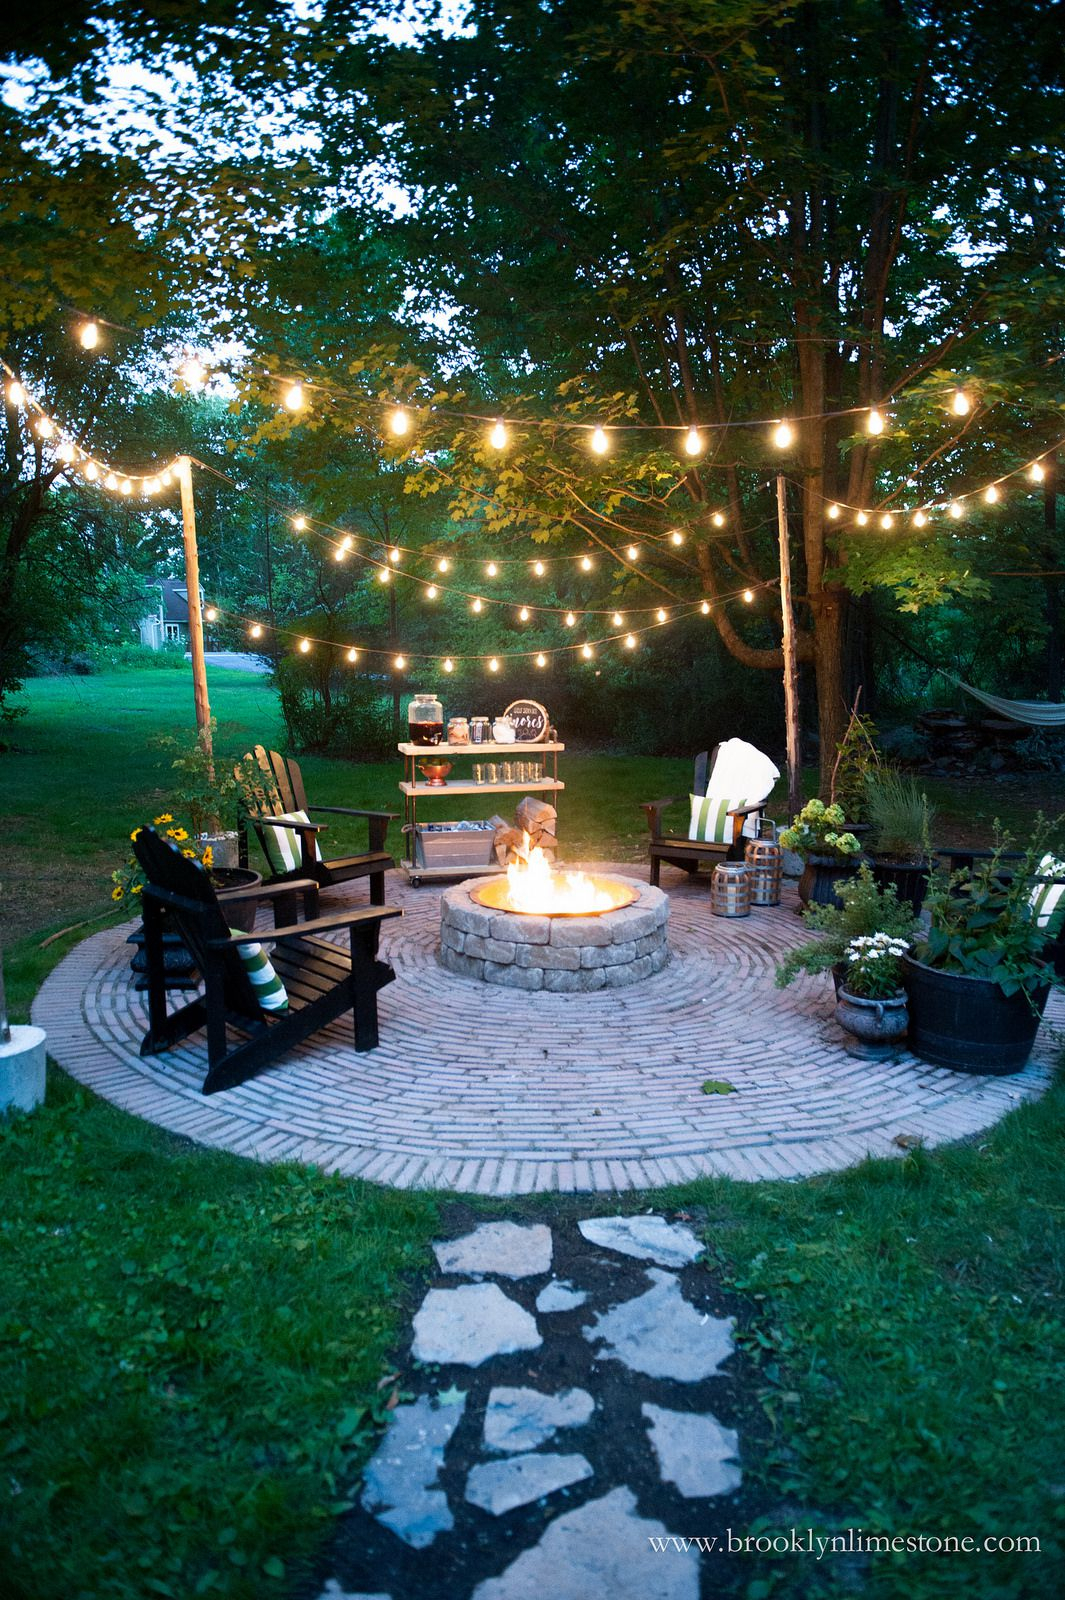 25 Backyard Lighting Ideas How To Hang Outdoor String Lights with Backyard String Lights Ideas